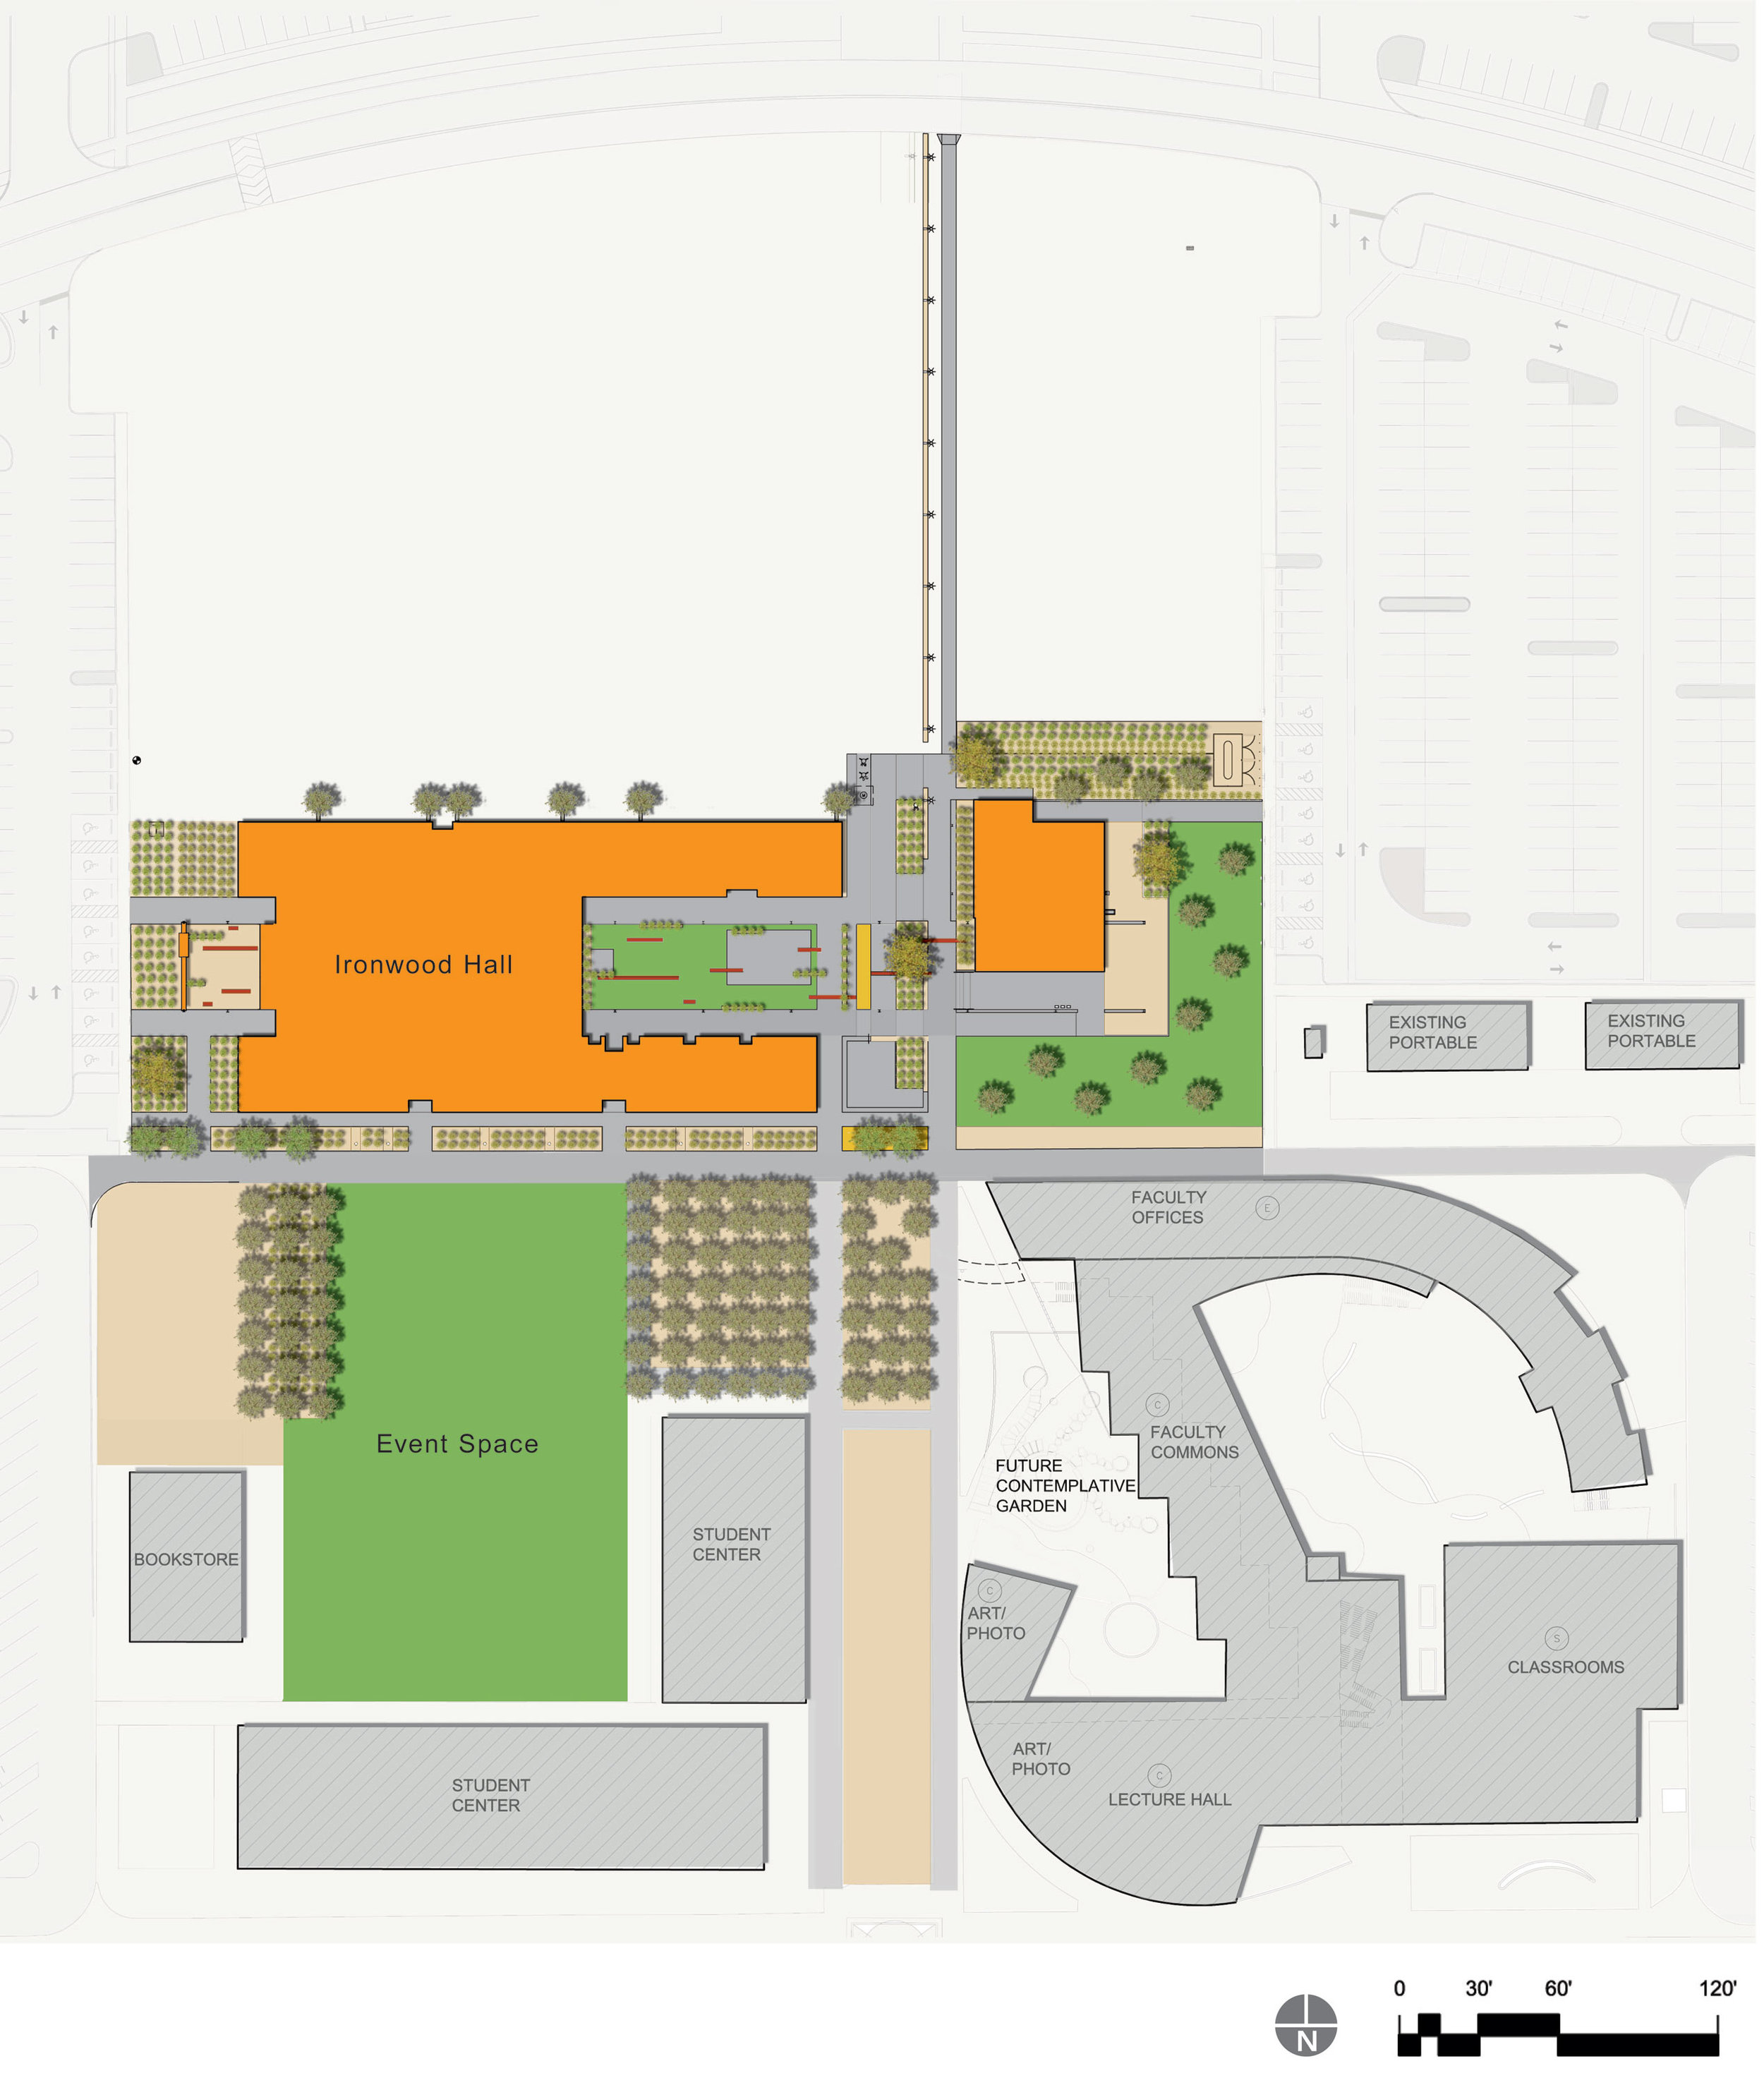 CGCC-Ironwood-Hall_Site-Plan-floor-plan-3.jpg